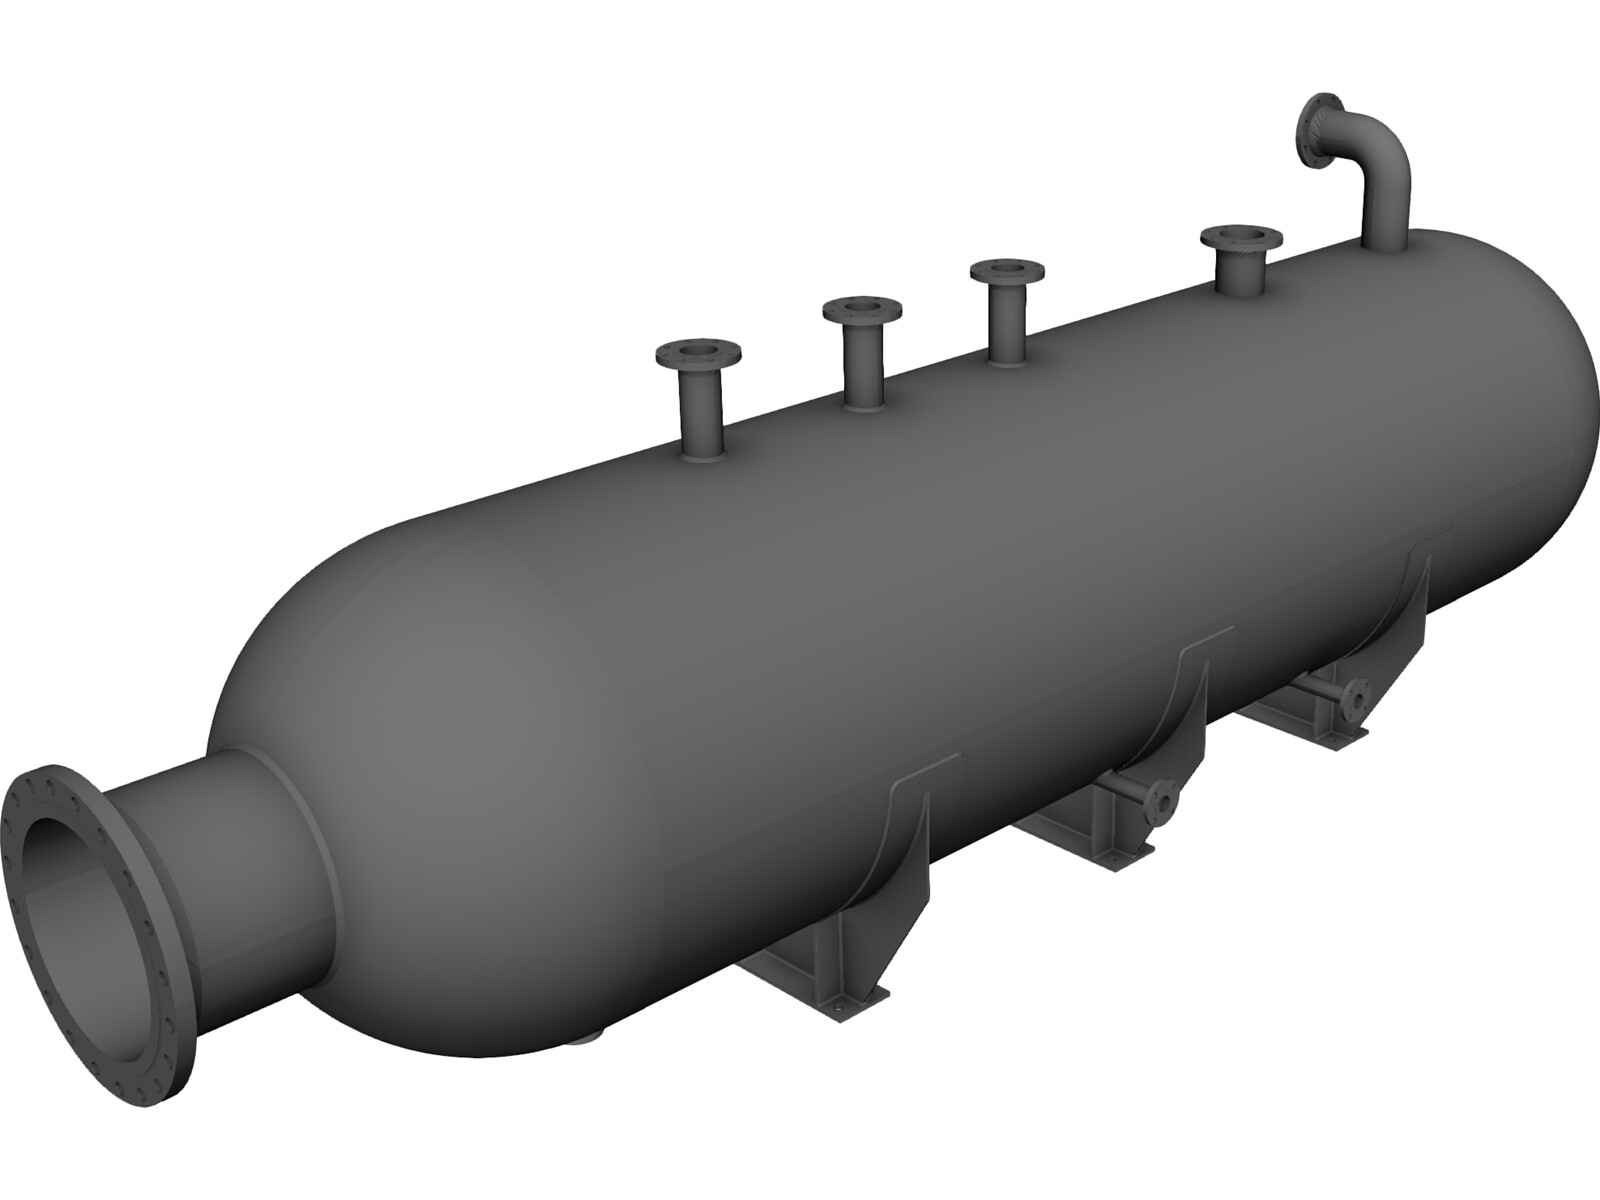 Cylindrical gas pressure vessel 3D CAD Model - 3D CAD Browser